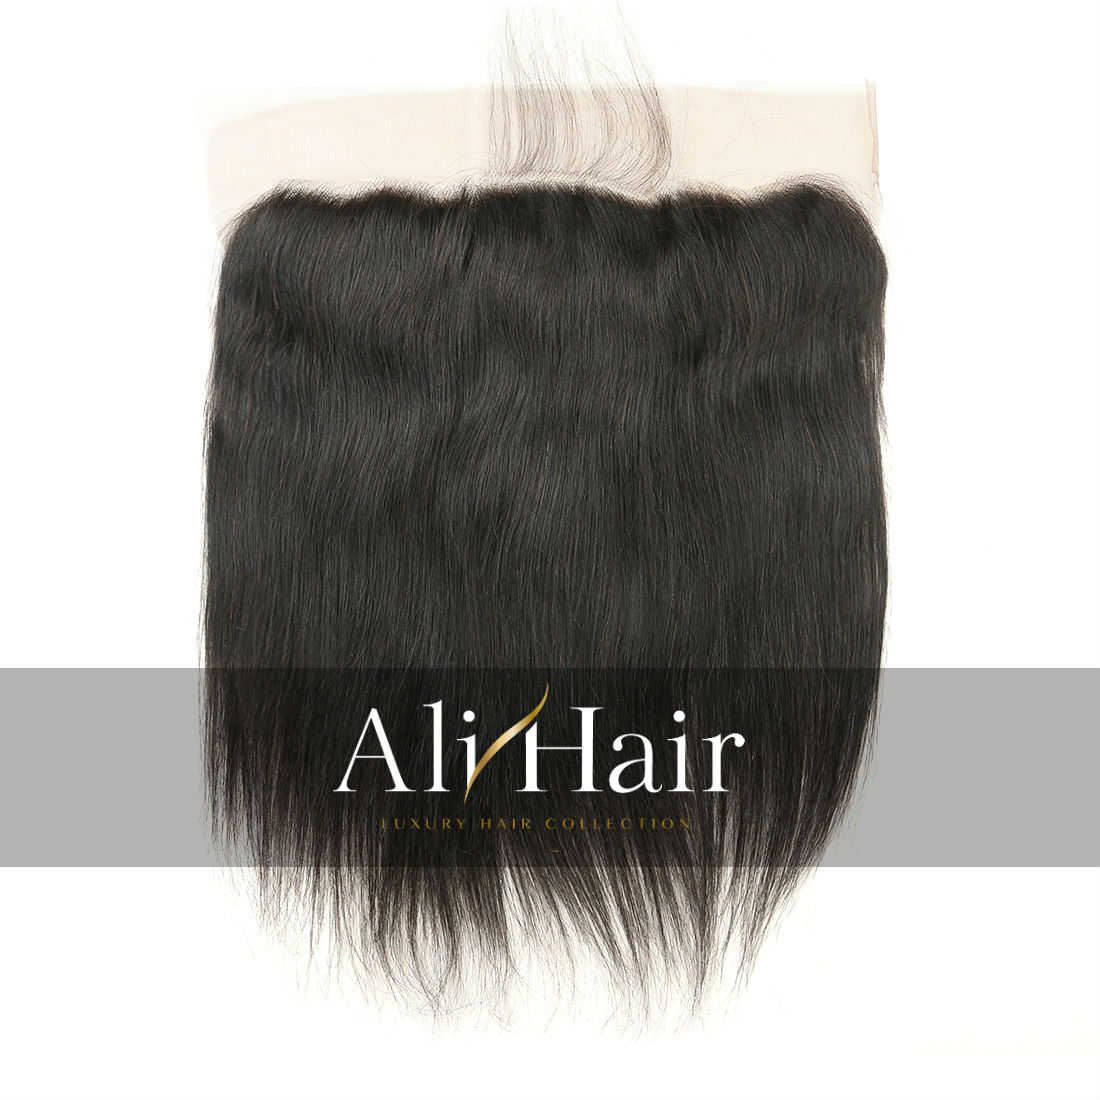 Alihair Straight Virgin Human Hair Lace Frontal 13″x4″ Natural Color 10A